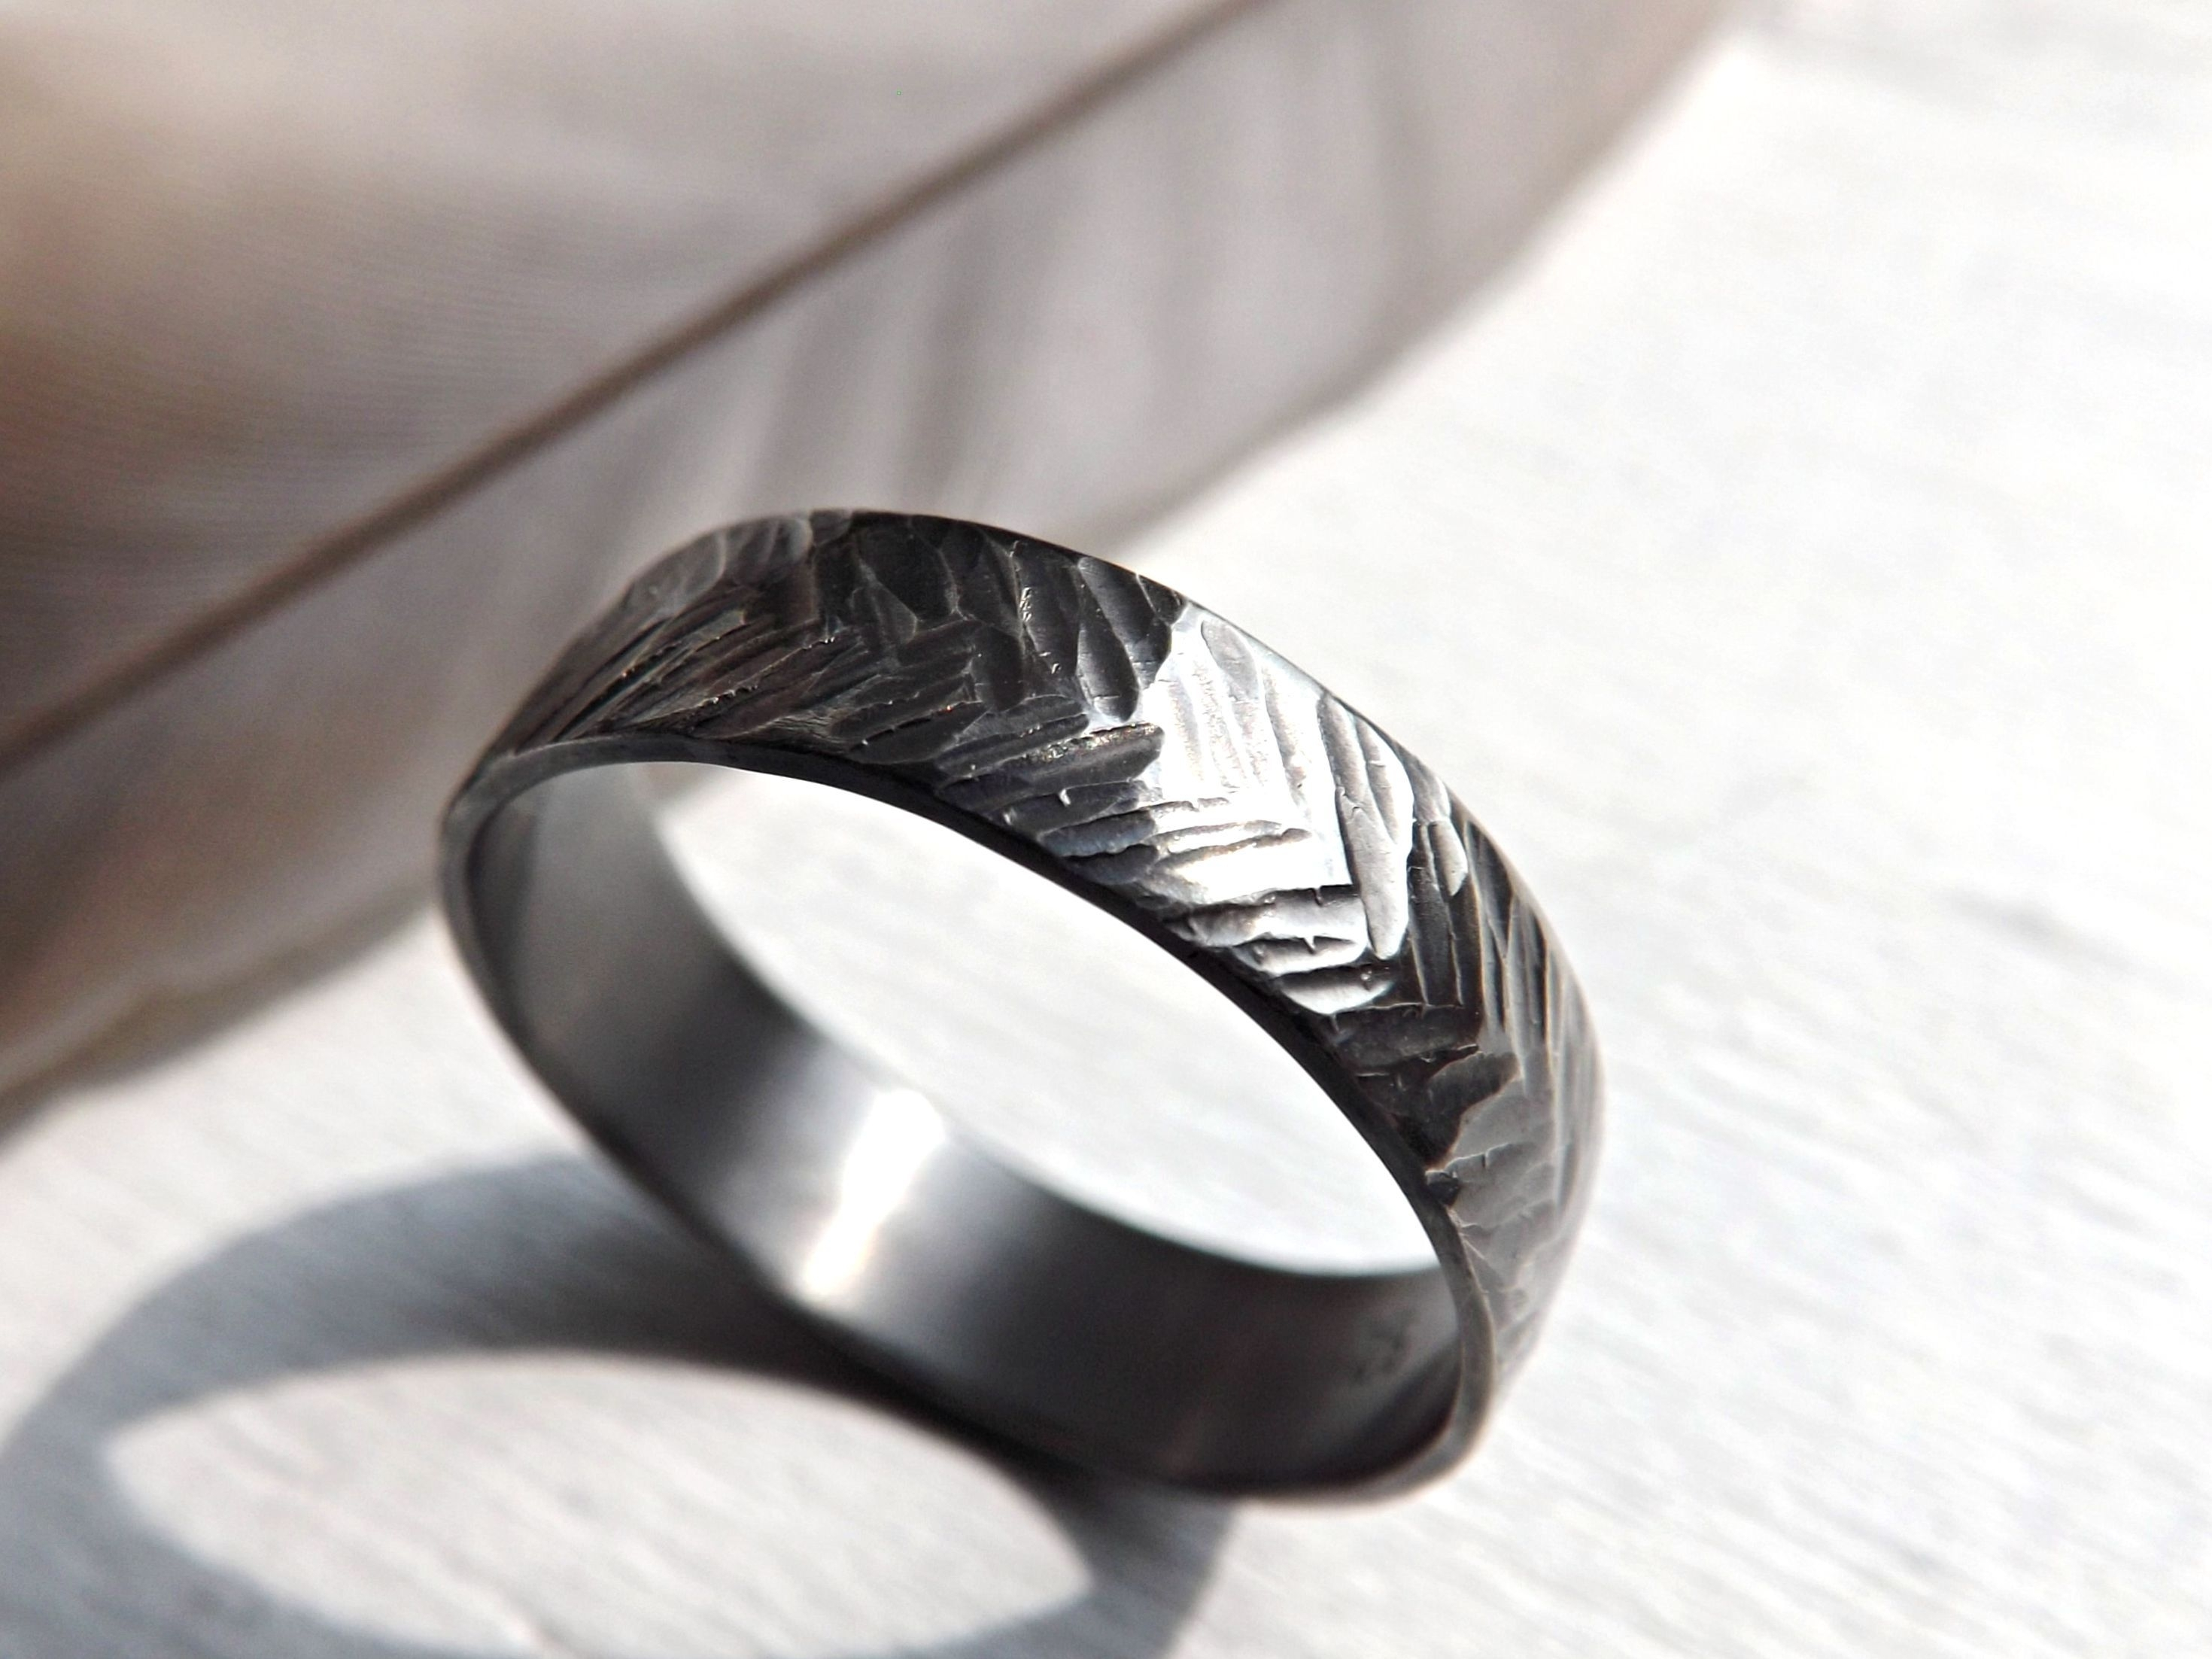 Buy A Handmade Chevron Wedding Ring Silver, Sterling Silver Ring Intended For Most Recently Released Men's Chevron Rings (View 5 of 15)